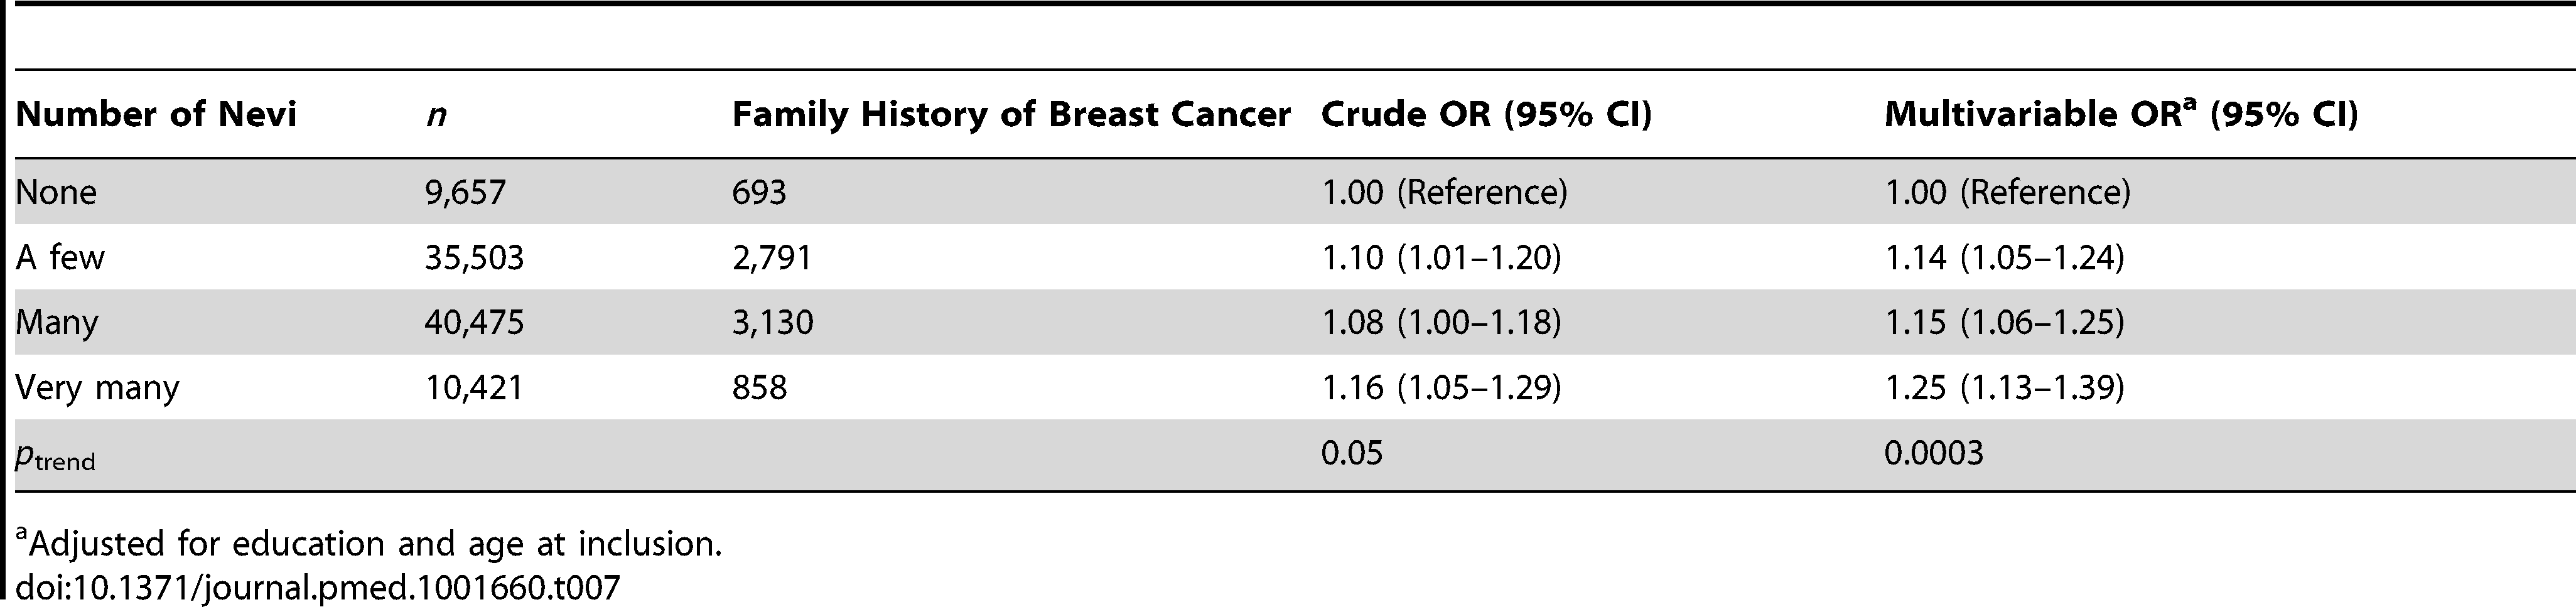 Odds ratios and 95% confidence intervals for number of nevi in relation to family history of breast cancer, E3N cohort.